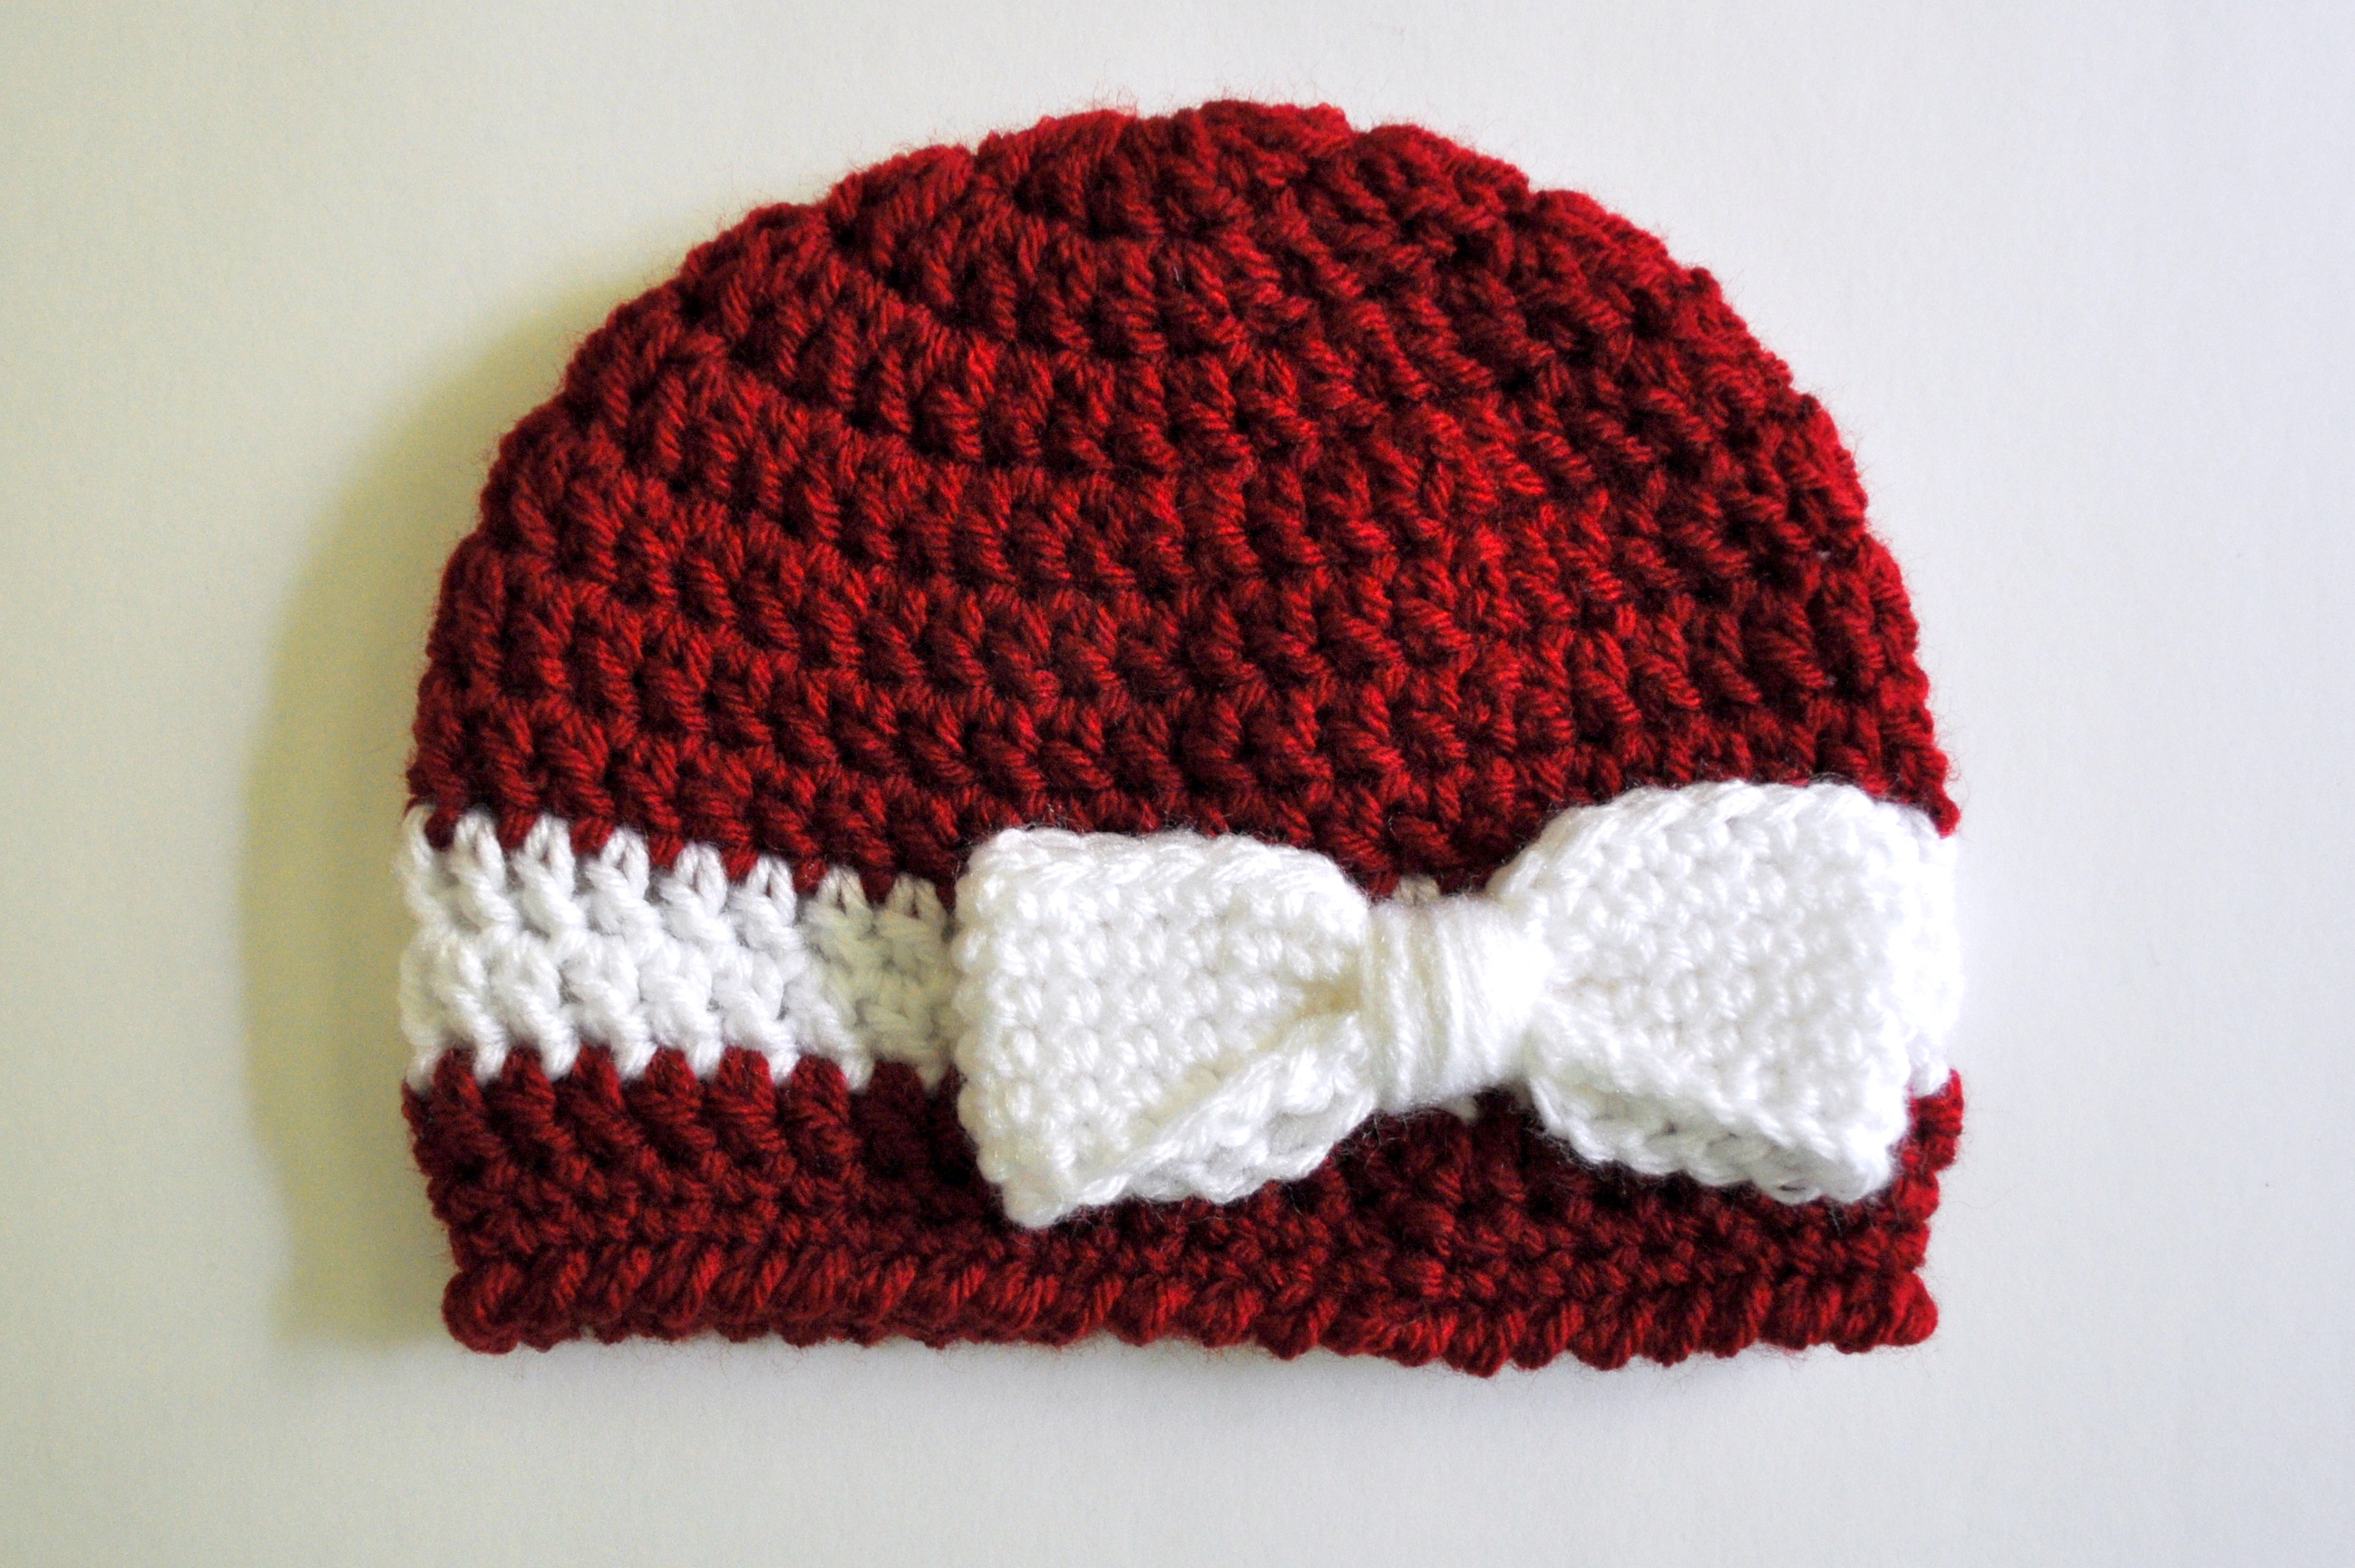 crochet baby beanie pattern crochet ribbon and bow baby hat pattern | classy crochet CRJBVBQ